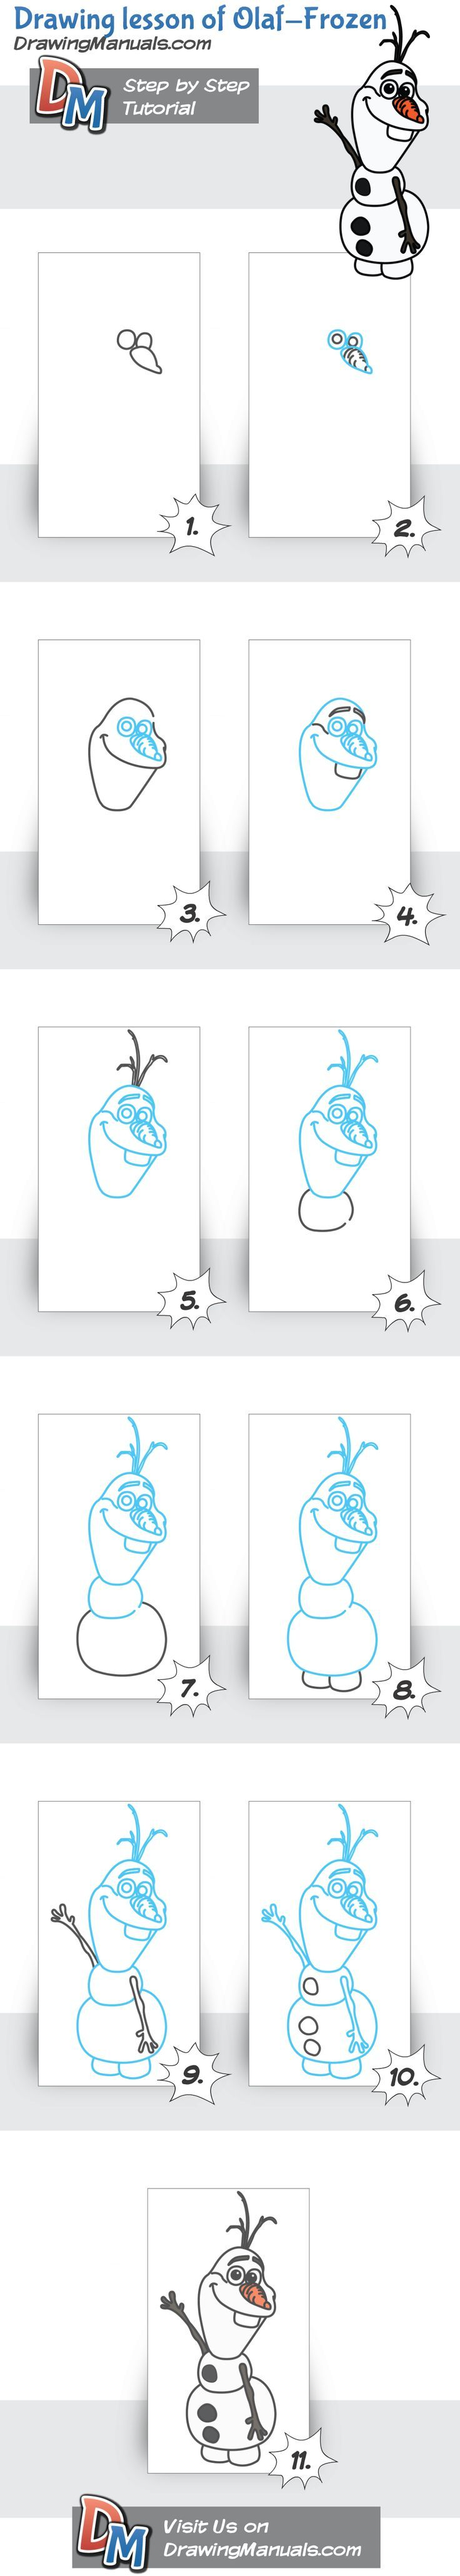 How to draw a coyote step 2 apps directories - Drawing Steps Of Olaf From Frozen